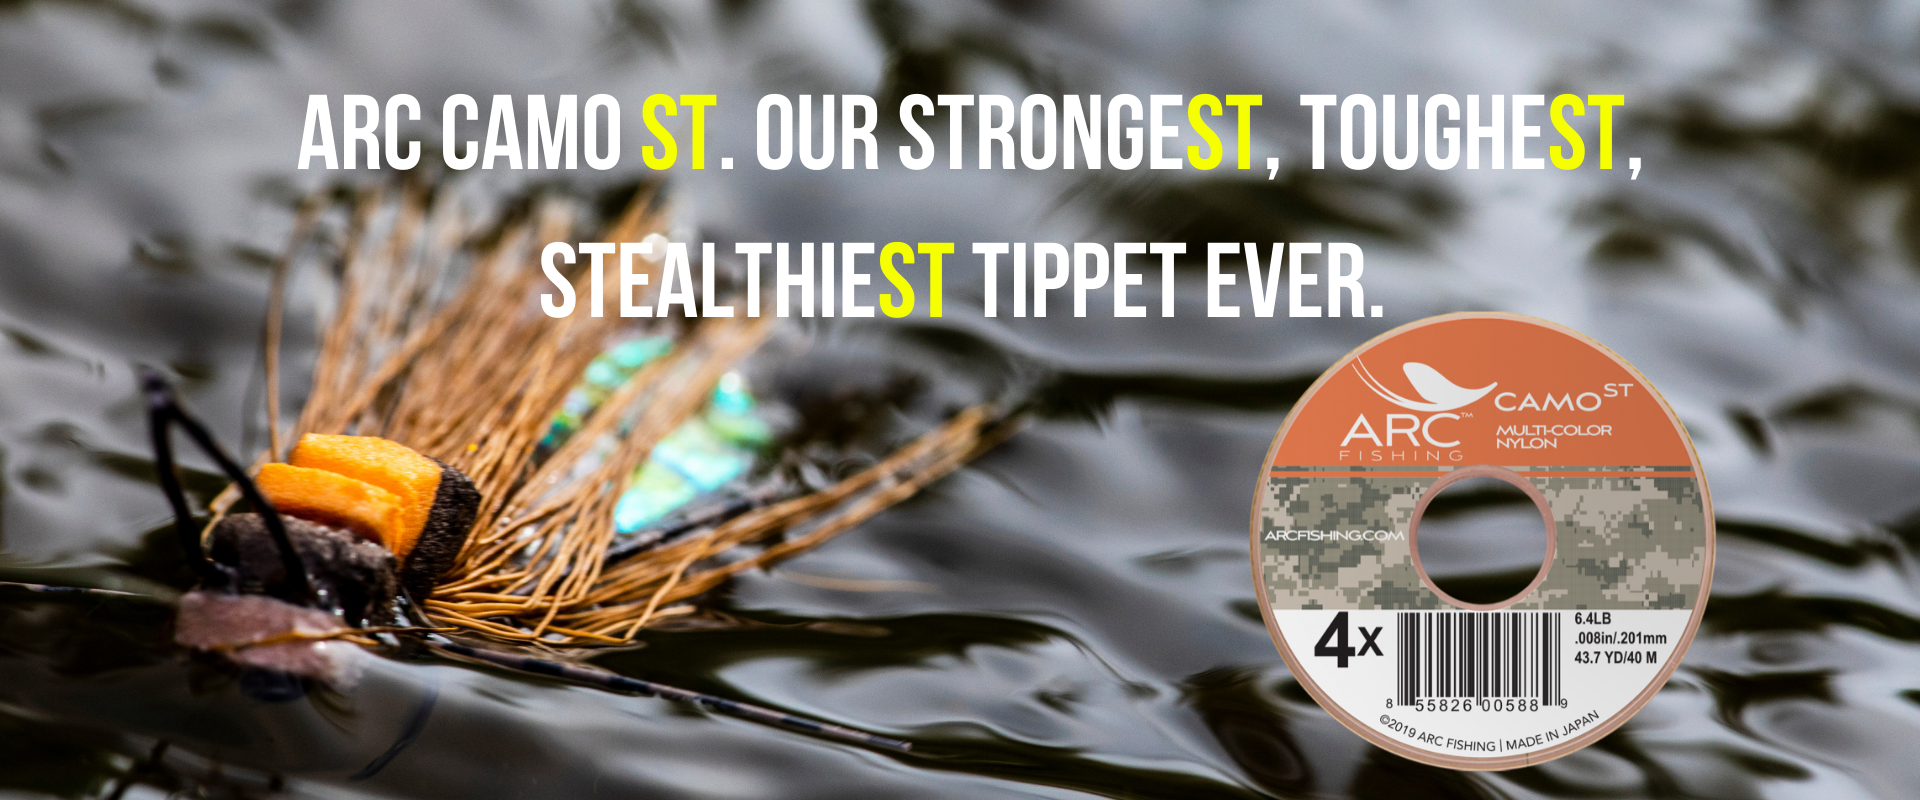 arc camo ST, our strongest, toughest, stealthiest tippet ever.